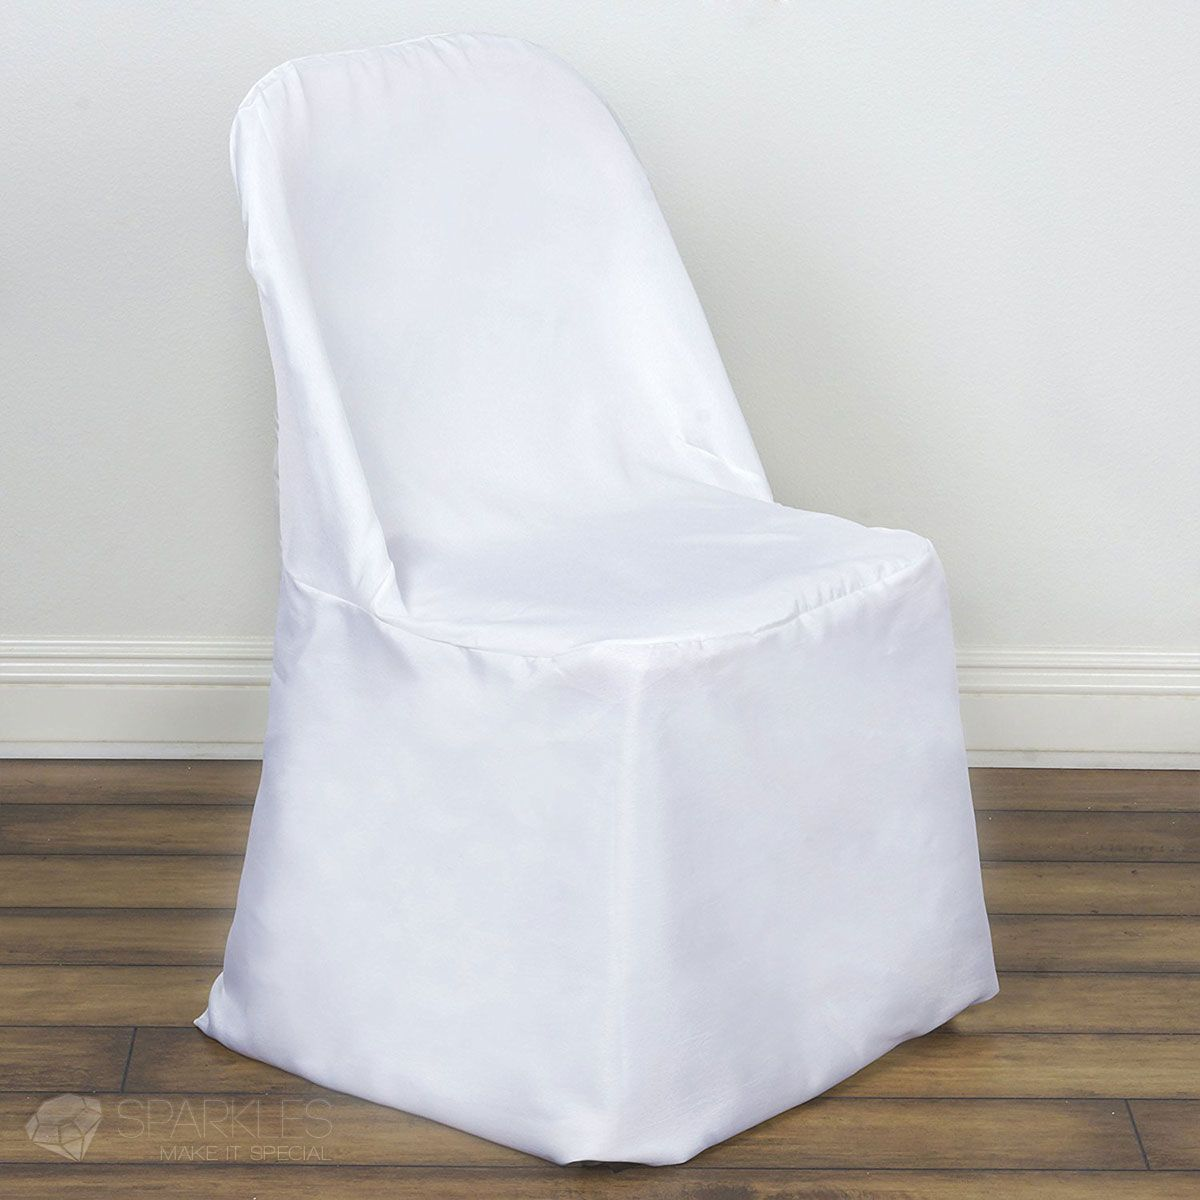 Sparkles Make It Special 1 Pc Polyester Folding Chair Covers Wedding Reception Banquet Party Restaurant Universal Fitted White Sparklesmakeitspecial Com